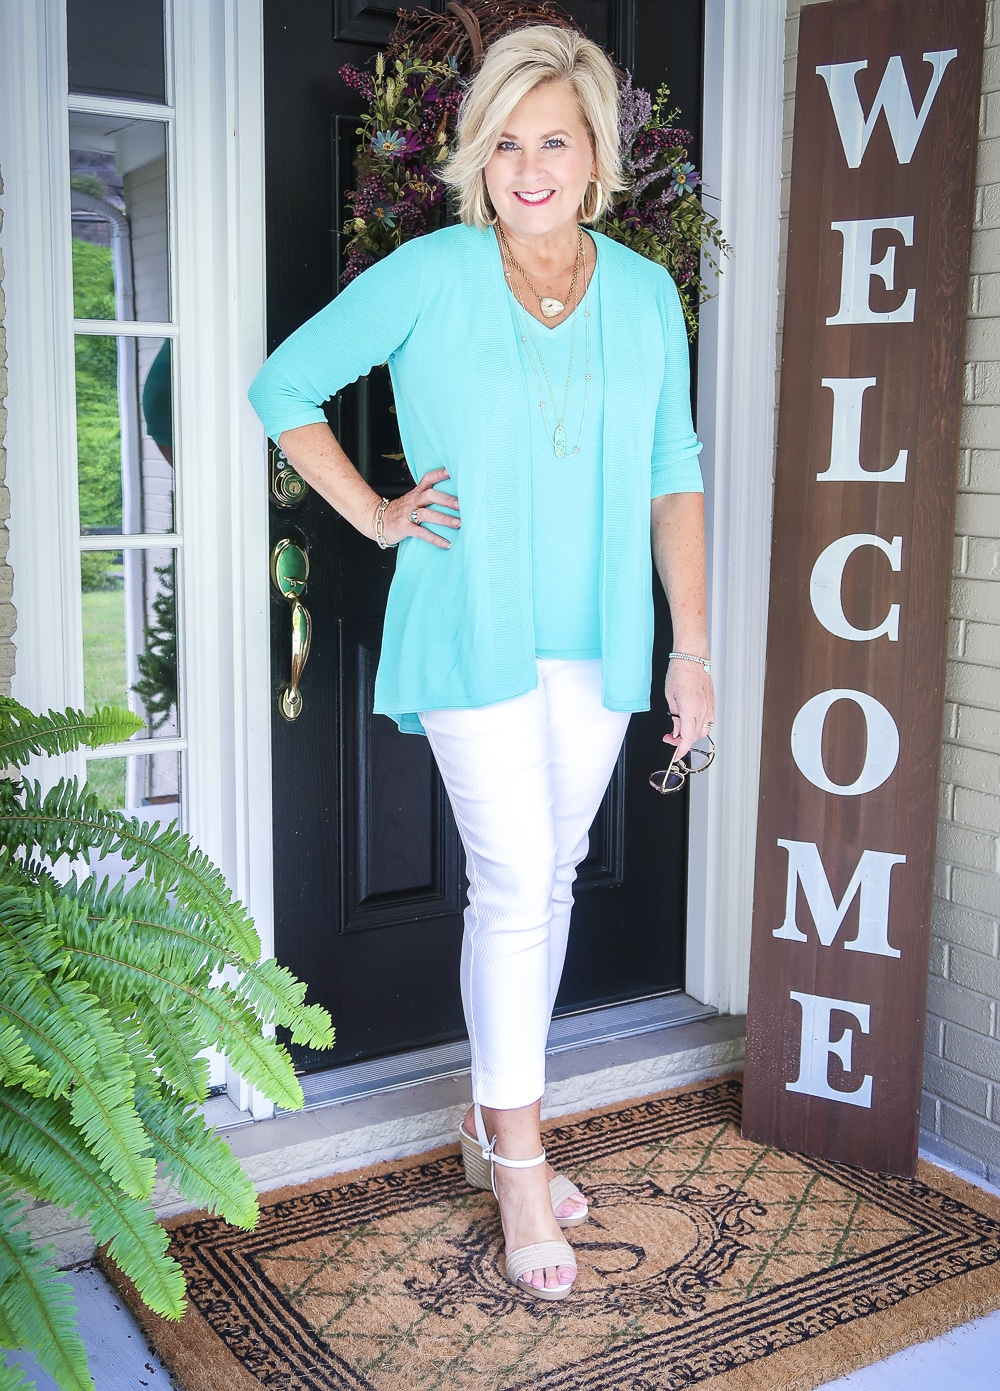 Fashion Blogger 50 Is Not Old is holding a pair of glasses and wearing a matching sweater set in Aqua, white crop pants, gold jewelry from Kendra Scott, and white espadrilles